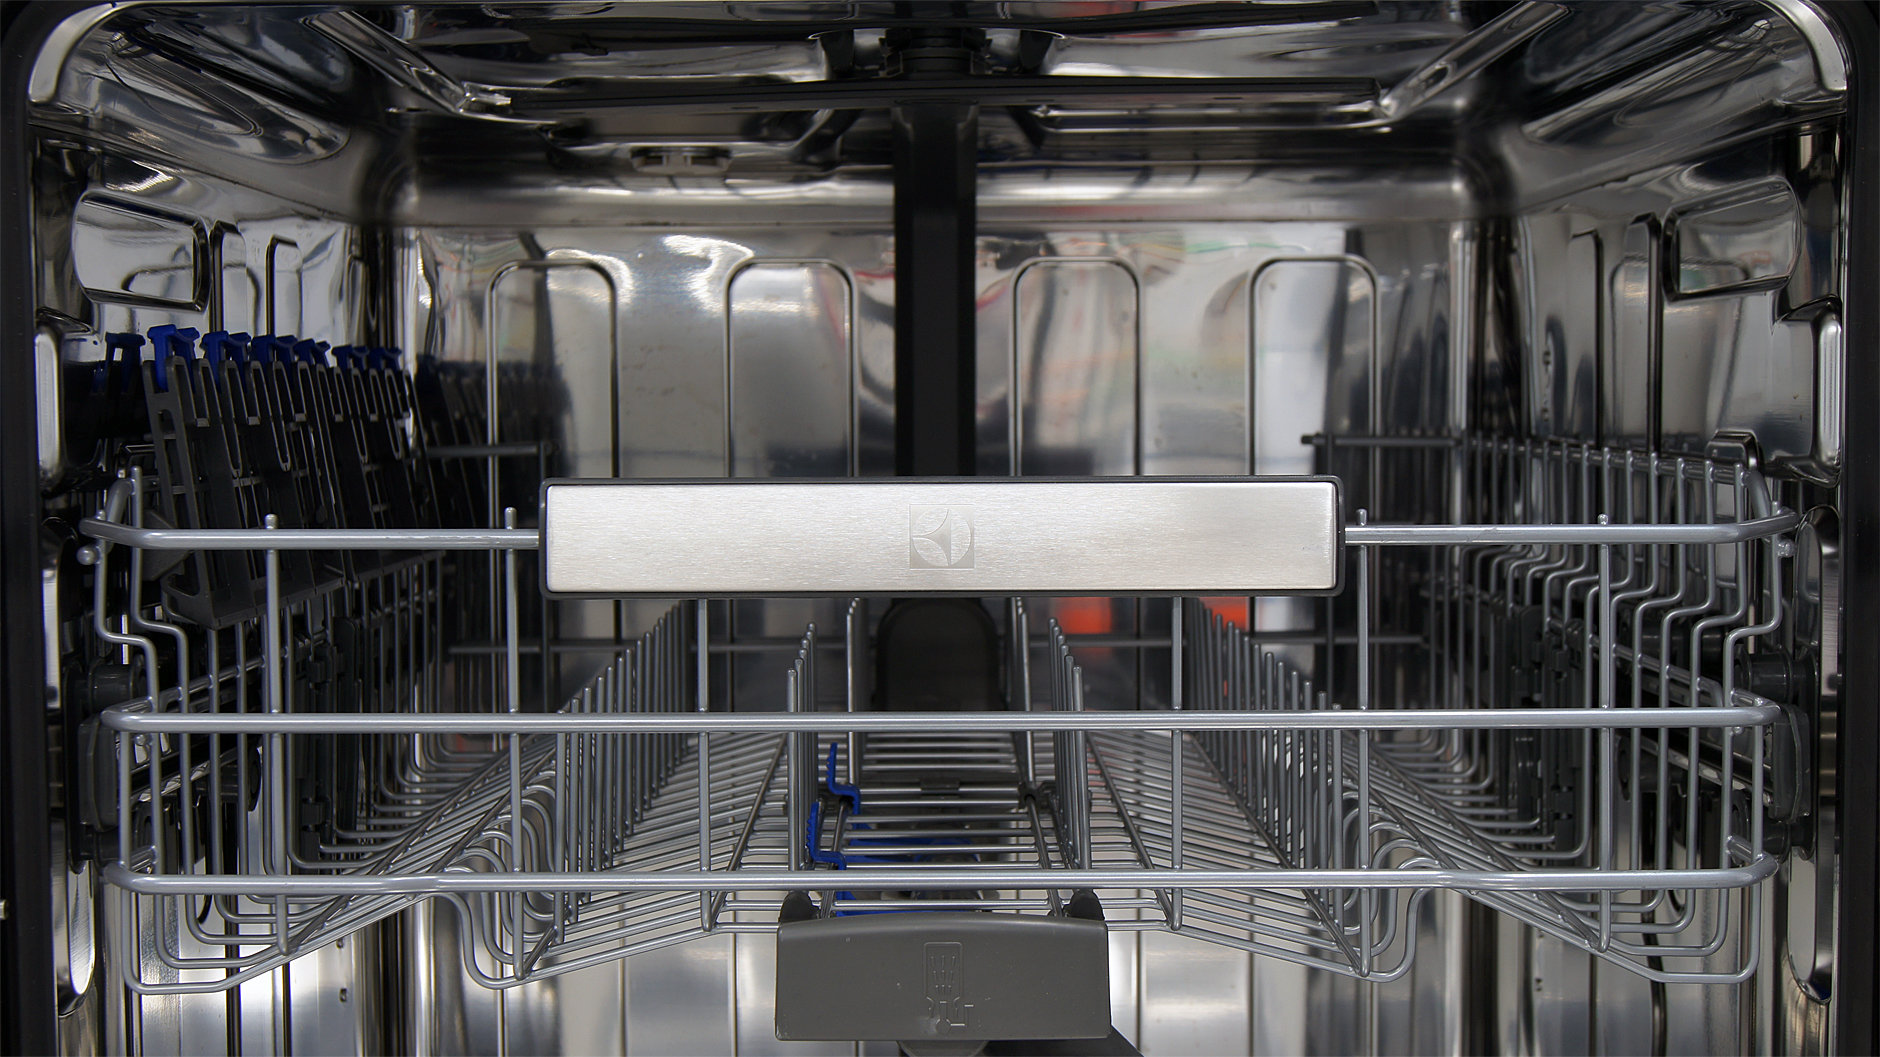 Electrolux EI24ID30QS front of top rack